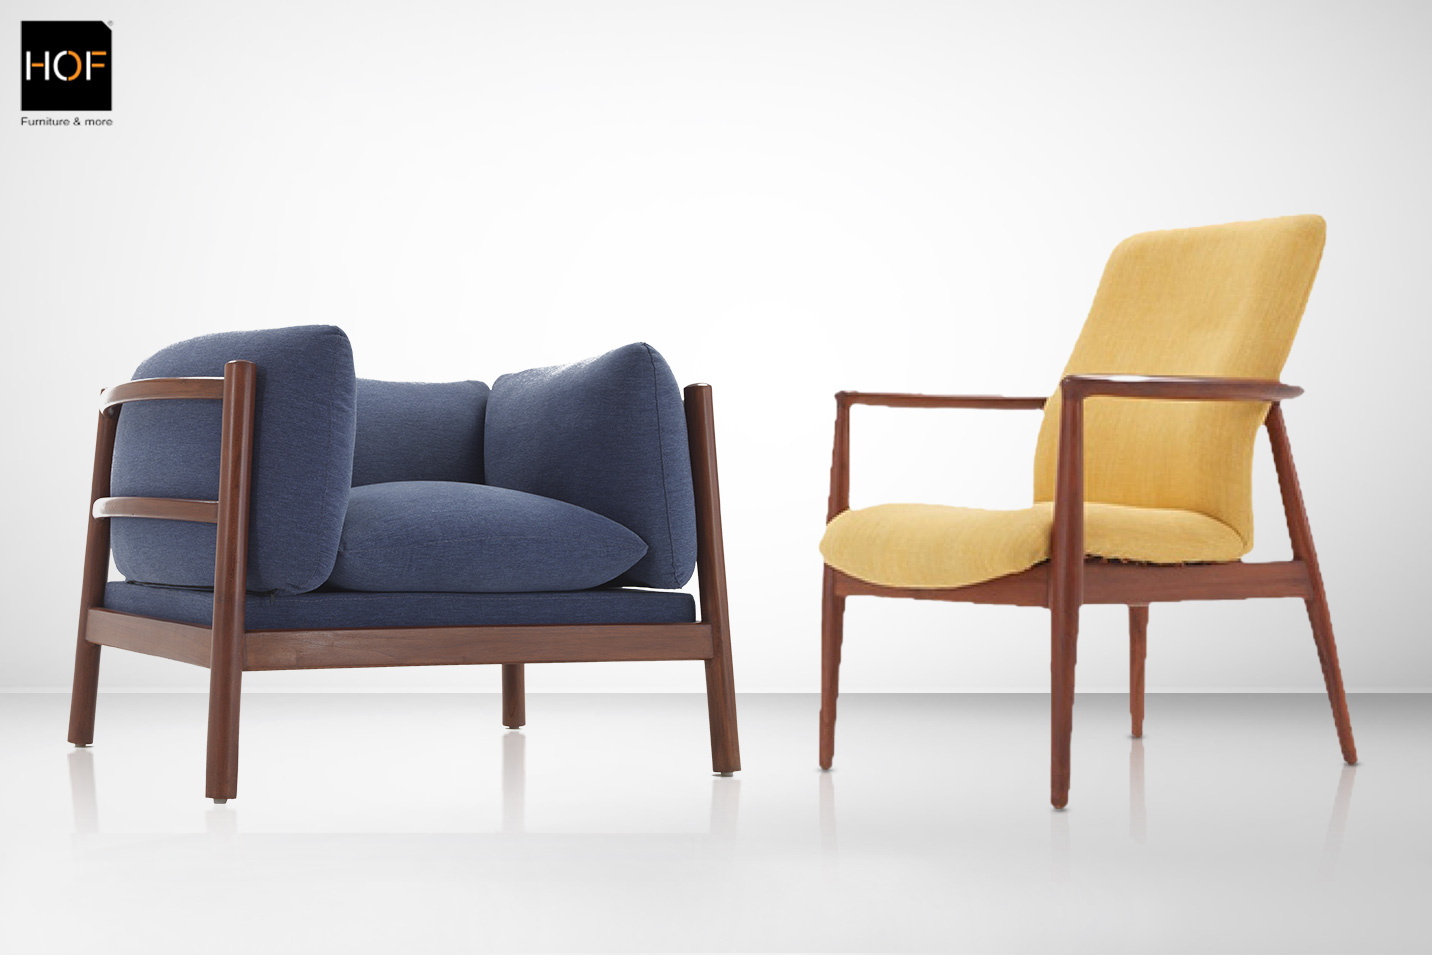 revolving chair india target parsons these hof chairs take luxury living to a whole new level